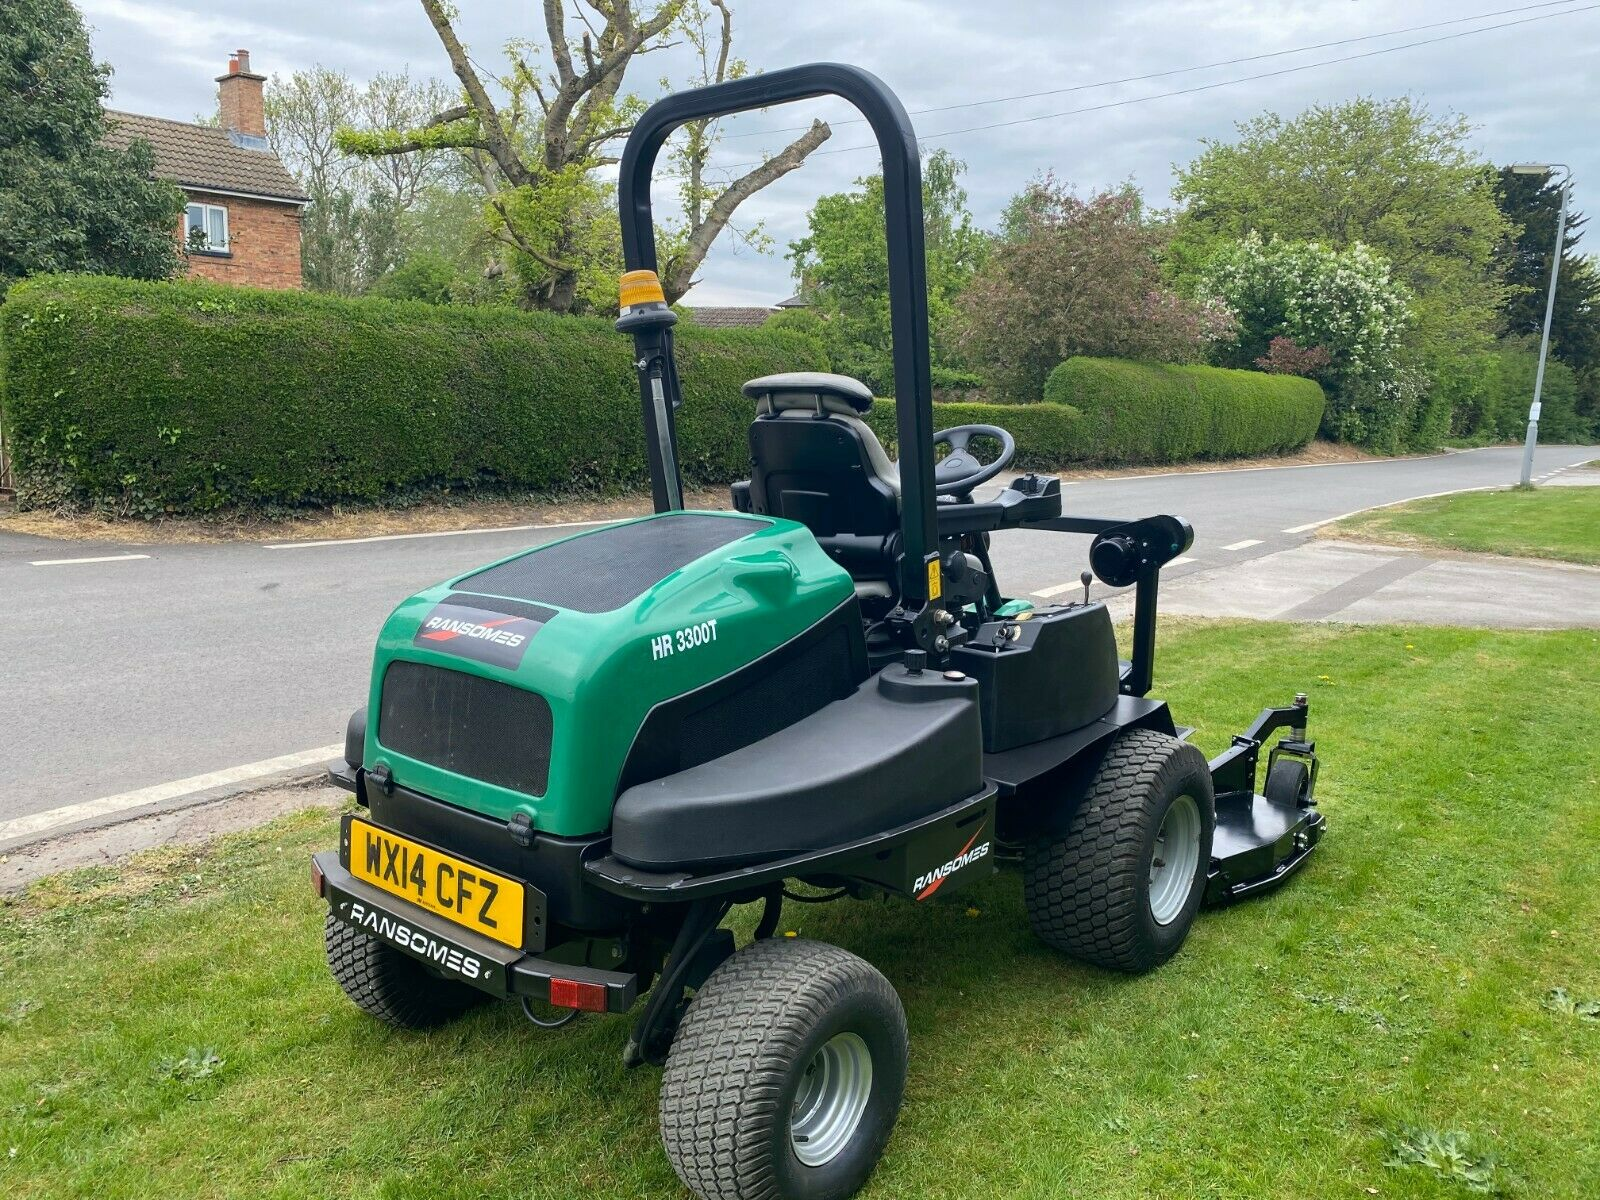 """RANSOMES HR3300T UPFRONT ROTARY, 60"""" CUT, 4x4, DIESEL, YEAR 2014, RIDE ON MOWER *PLUS VAT* - Image 7 of 10"""